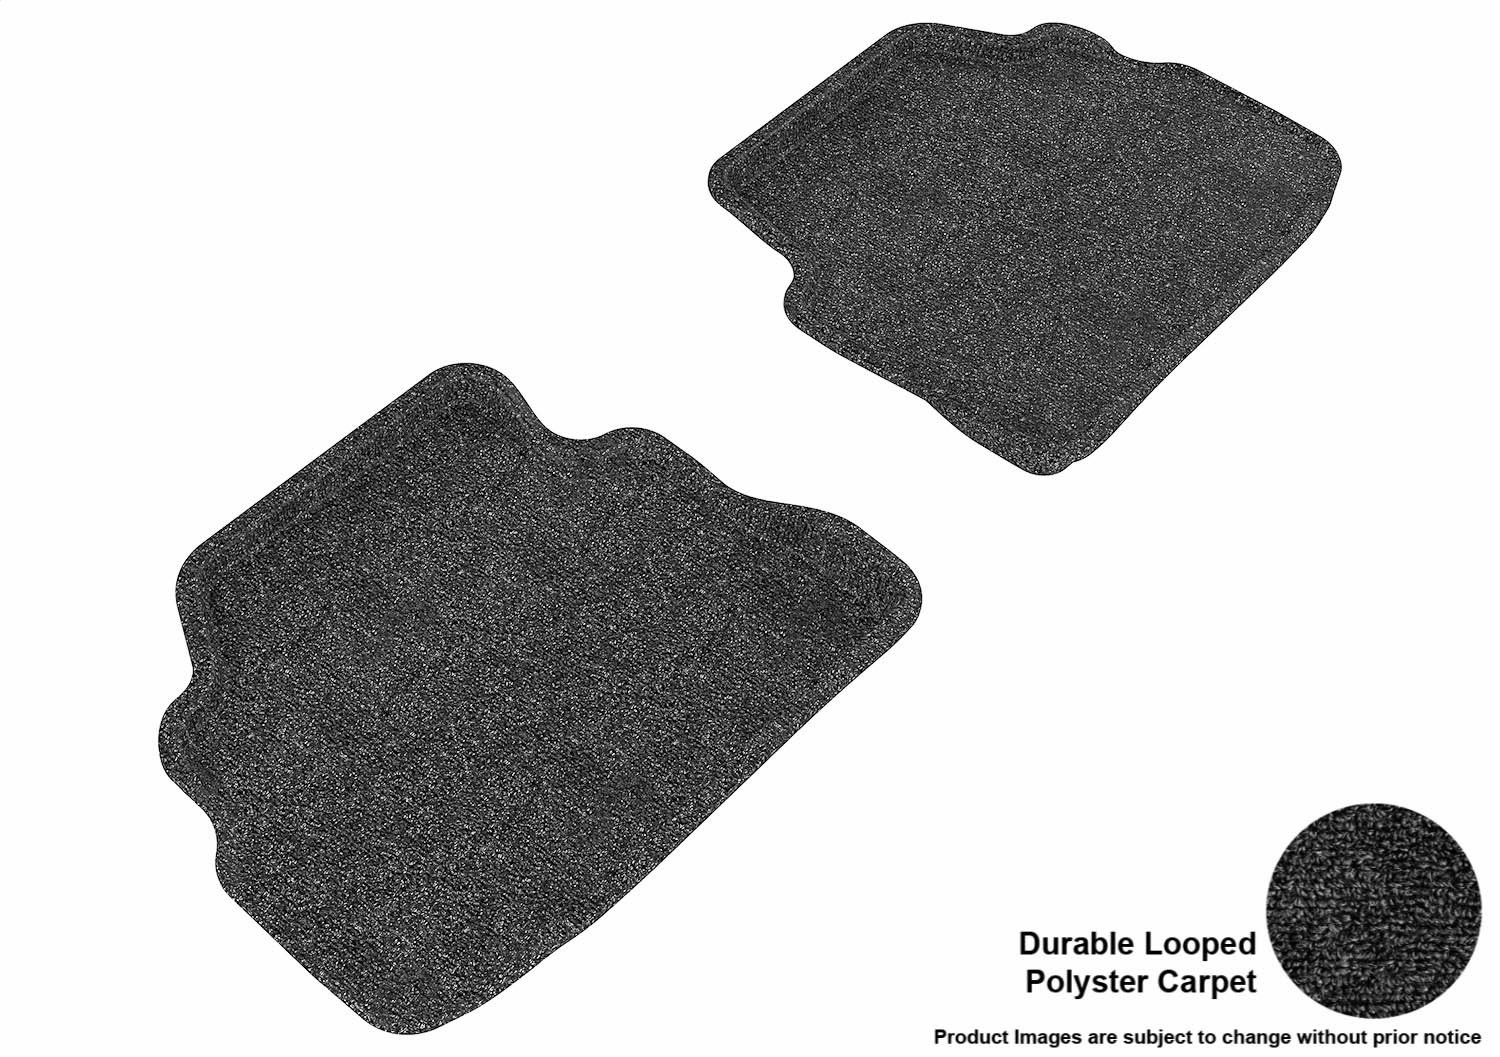 1997 Dodge Ram 3500 Club Cab Grey Loop Driver GGBAILEY D4807A-S2A-GY-LP Custom Fit Automotive Carpet Floor Mats for 1995 1996 Passenger /& Rear